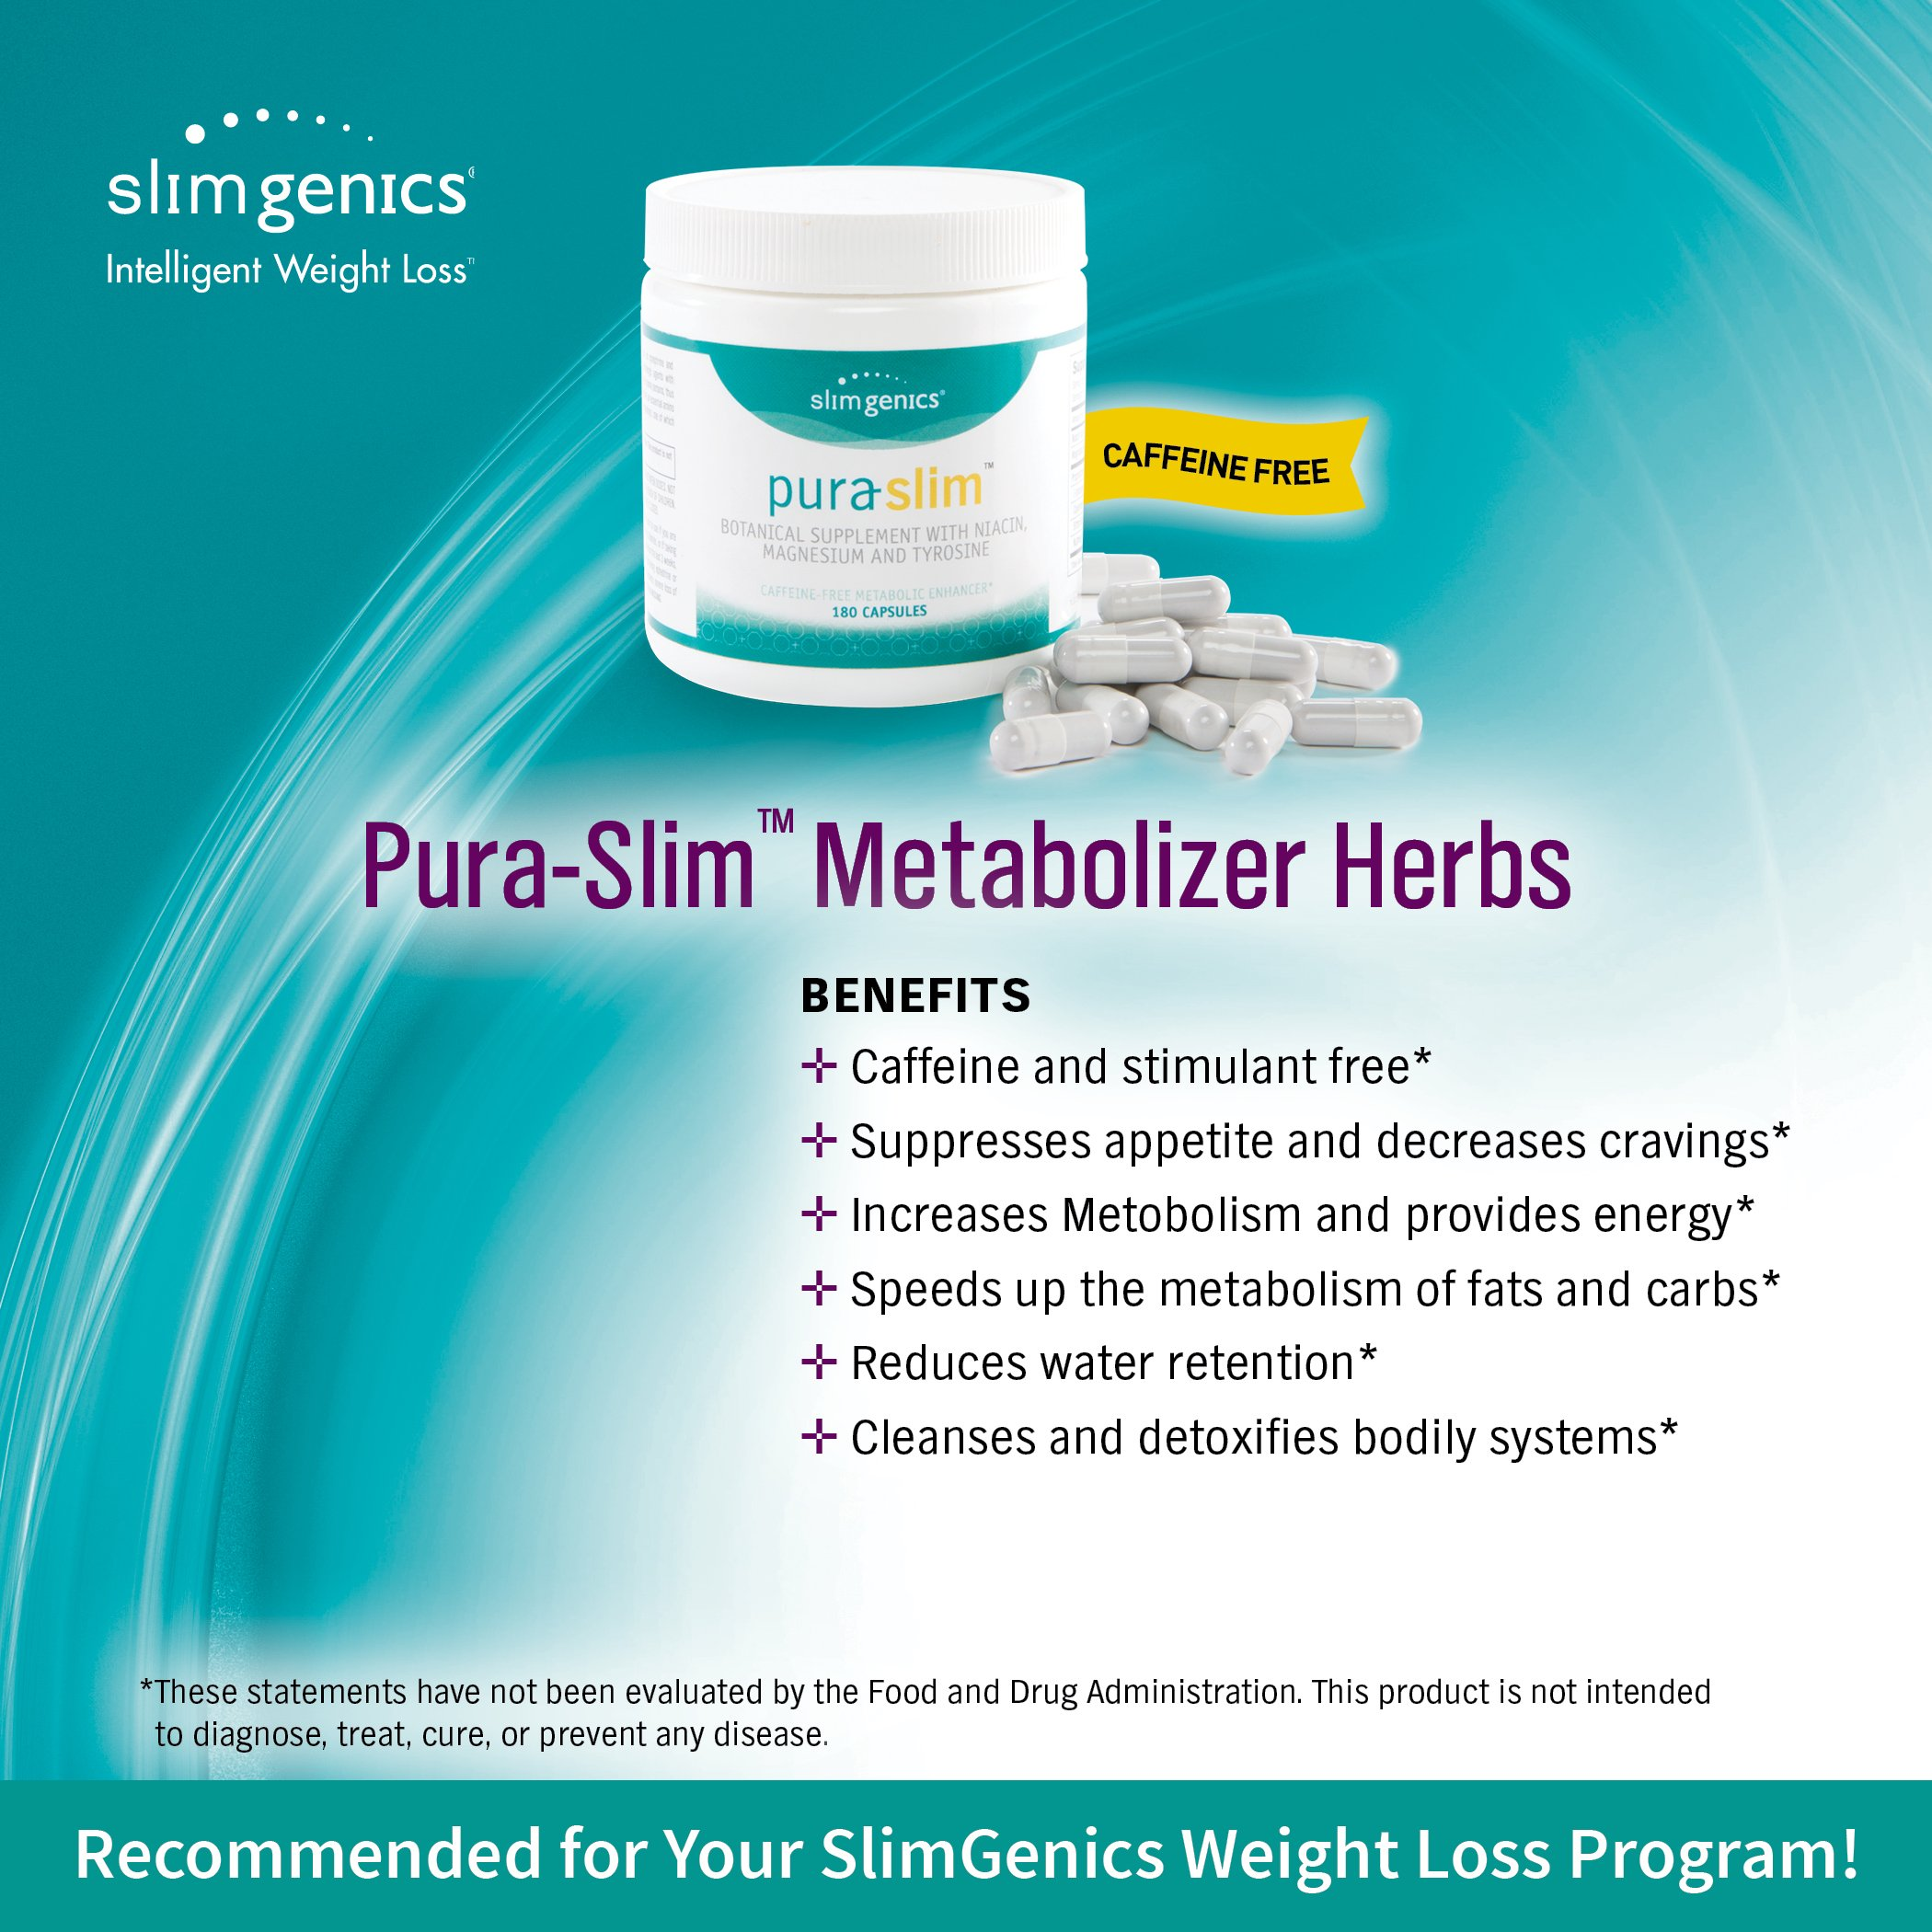 SlimGenics Pura-Slim | Metabolizer Herb – Metabolic Booster with Powerful Herbs and Nutrients, Thermogenic Fat Burners for Weight Loss, Fights Fatigue and Increases Energy (180 Count) by SlimGenics (Image #5)